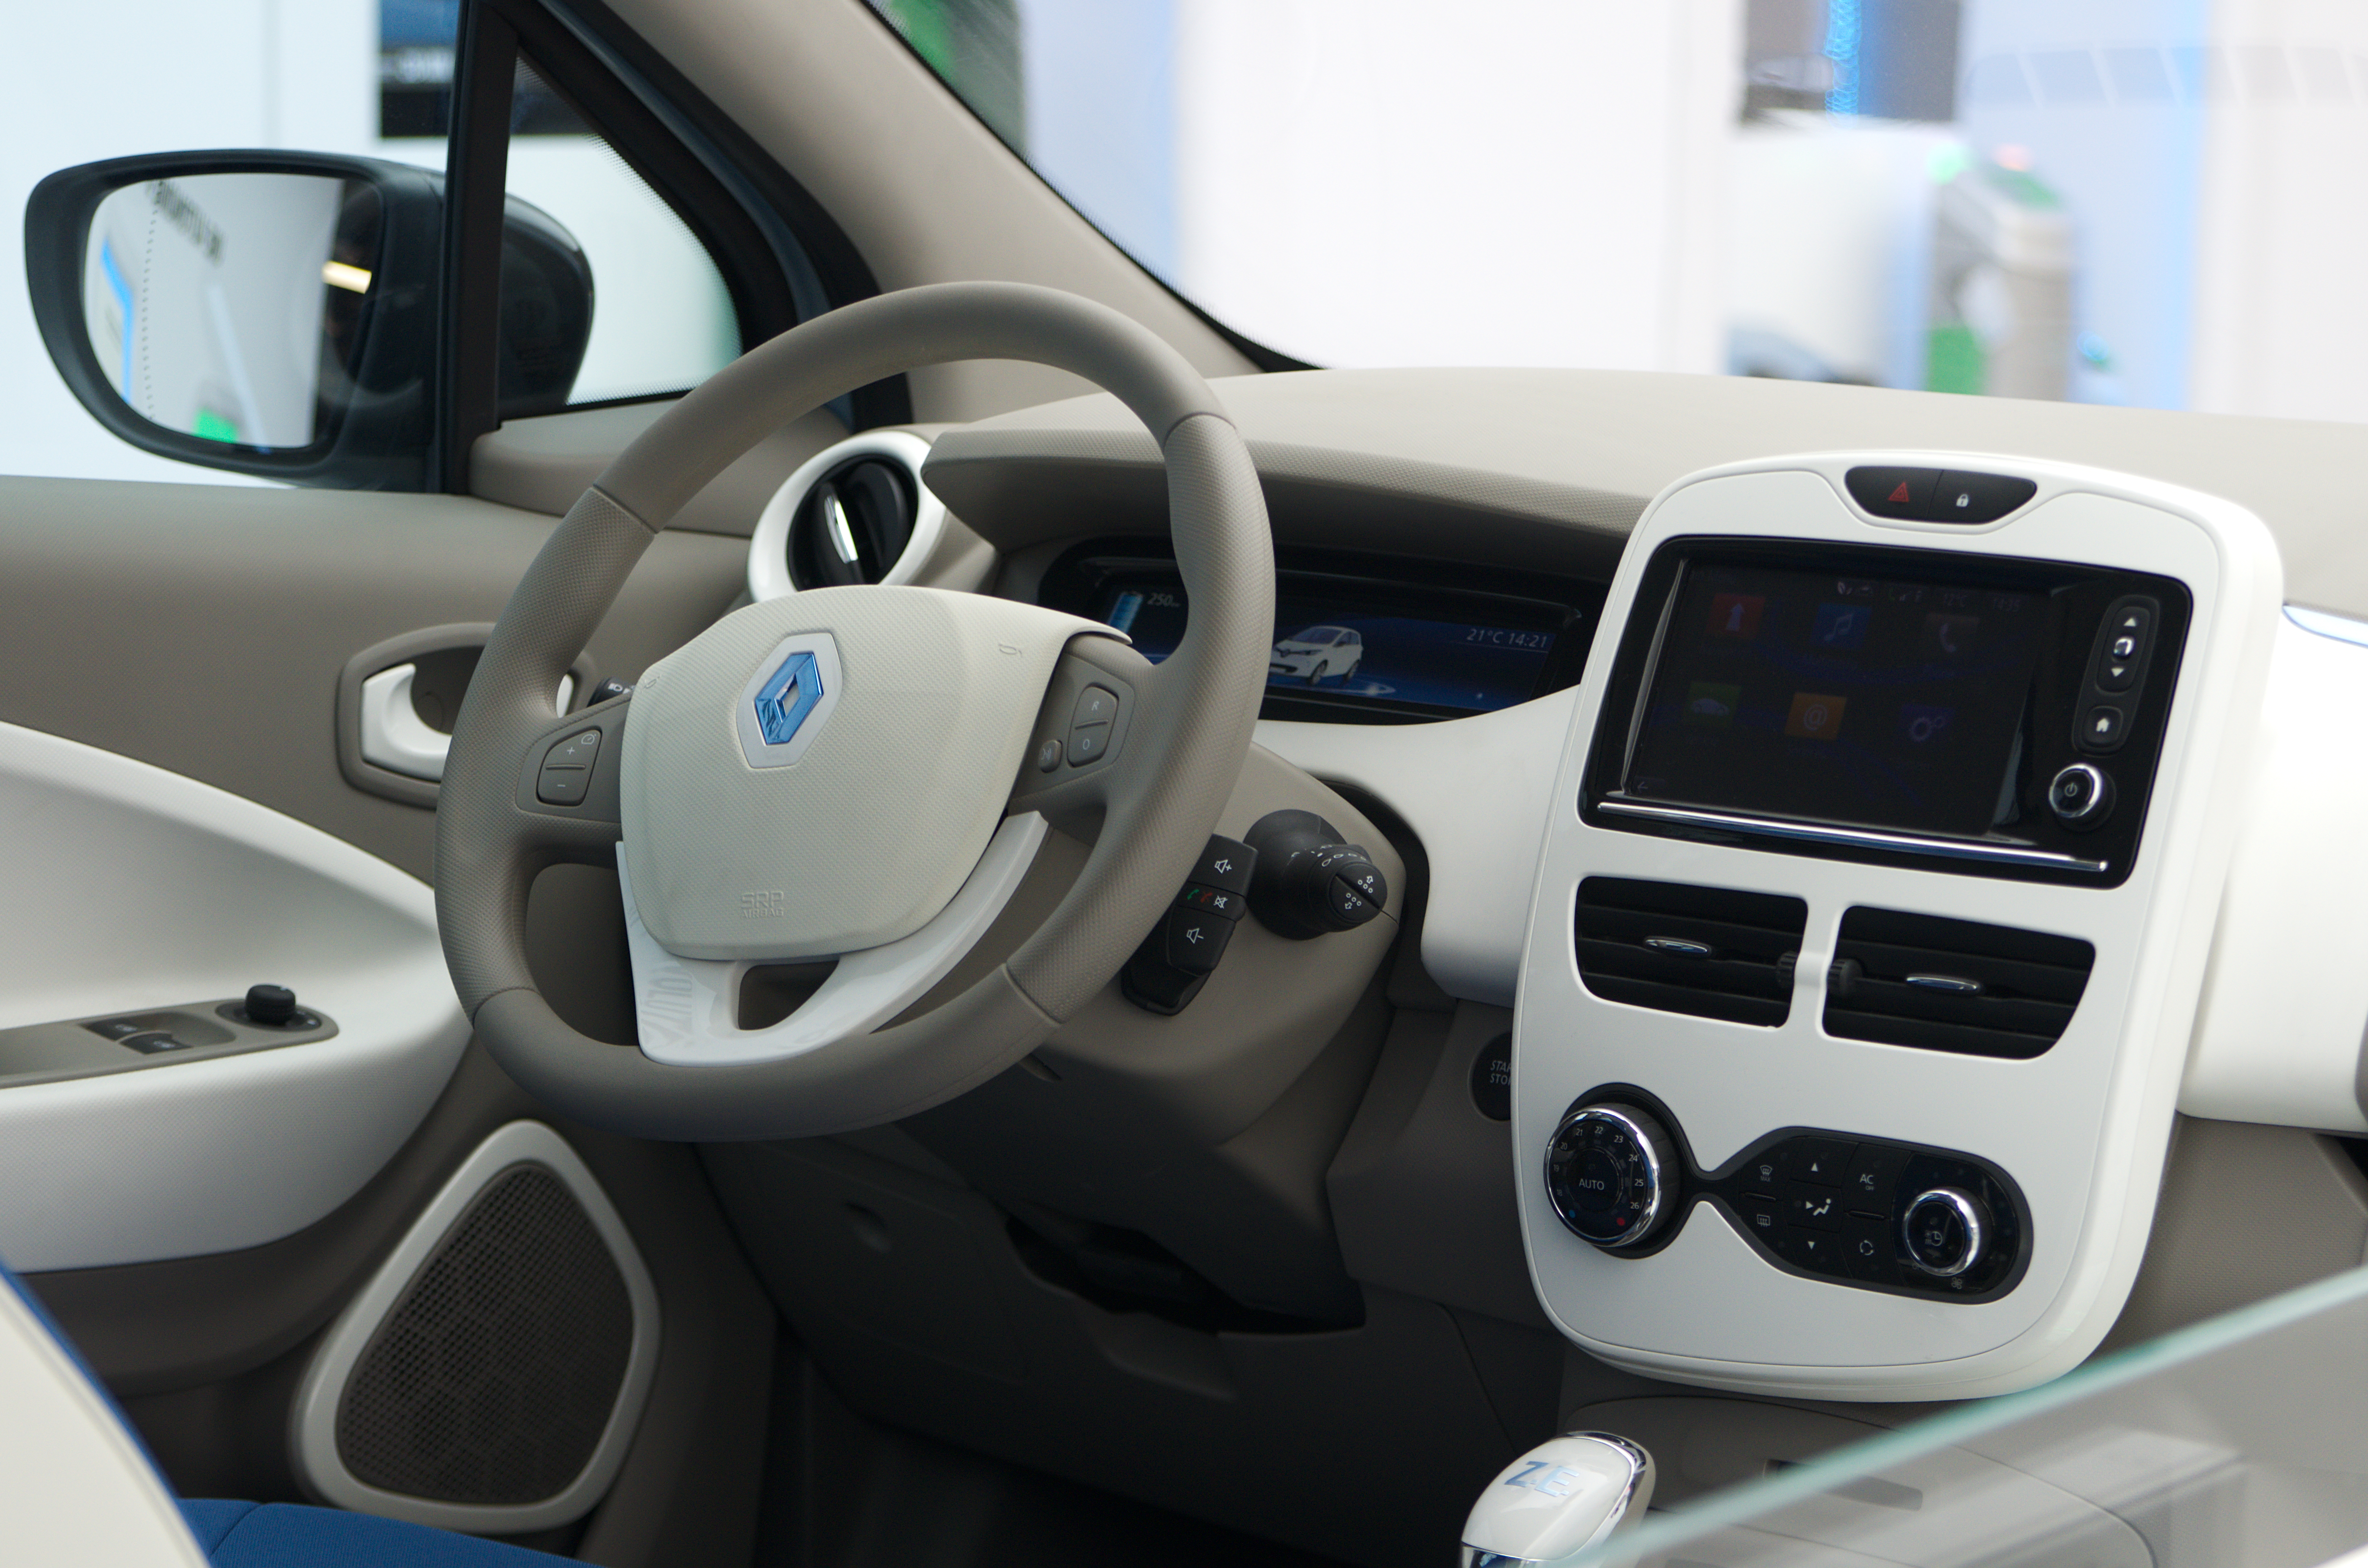 All photos of the renault rodeo 6 on this page are represented for - Interior